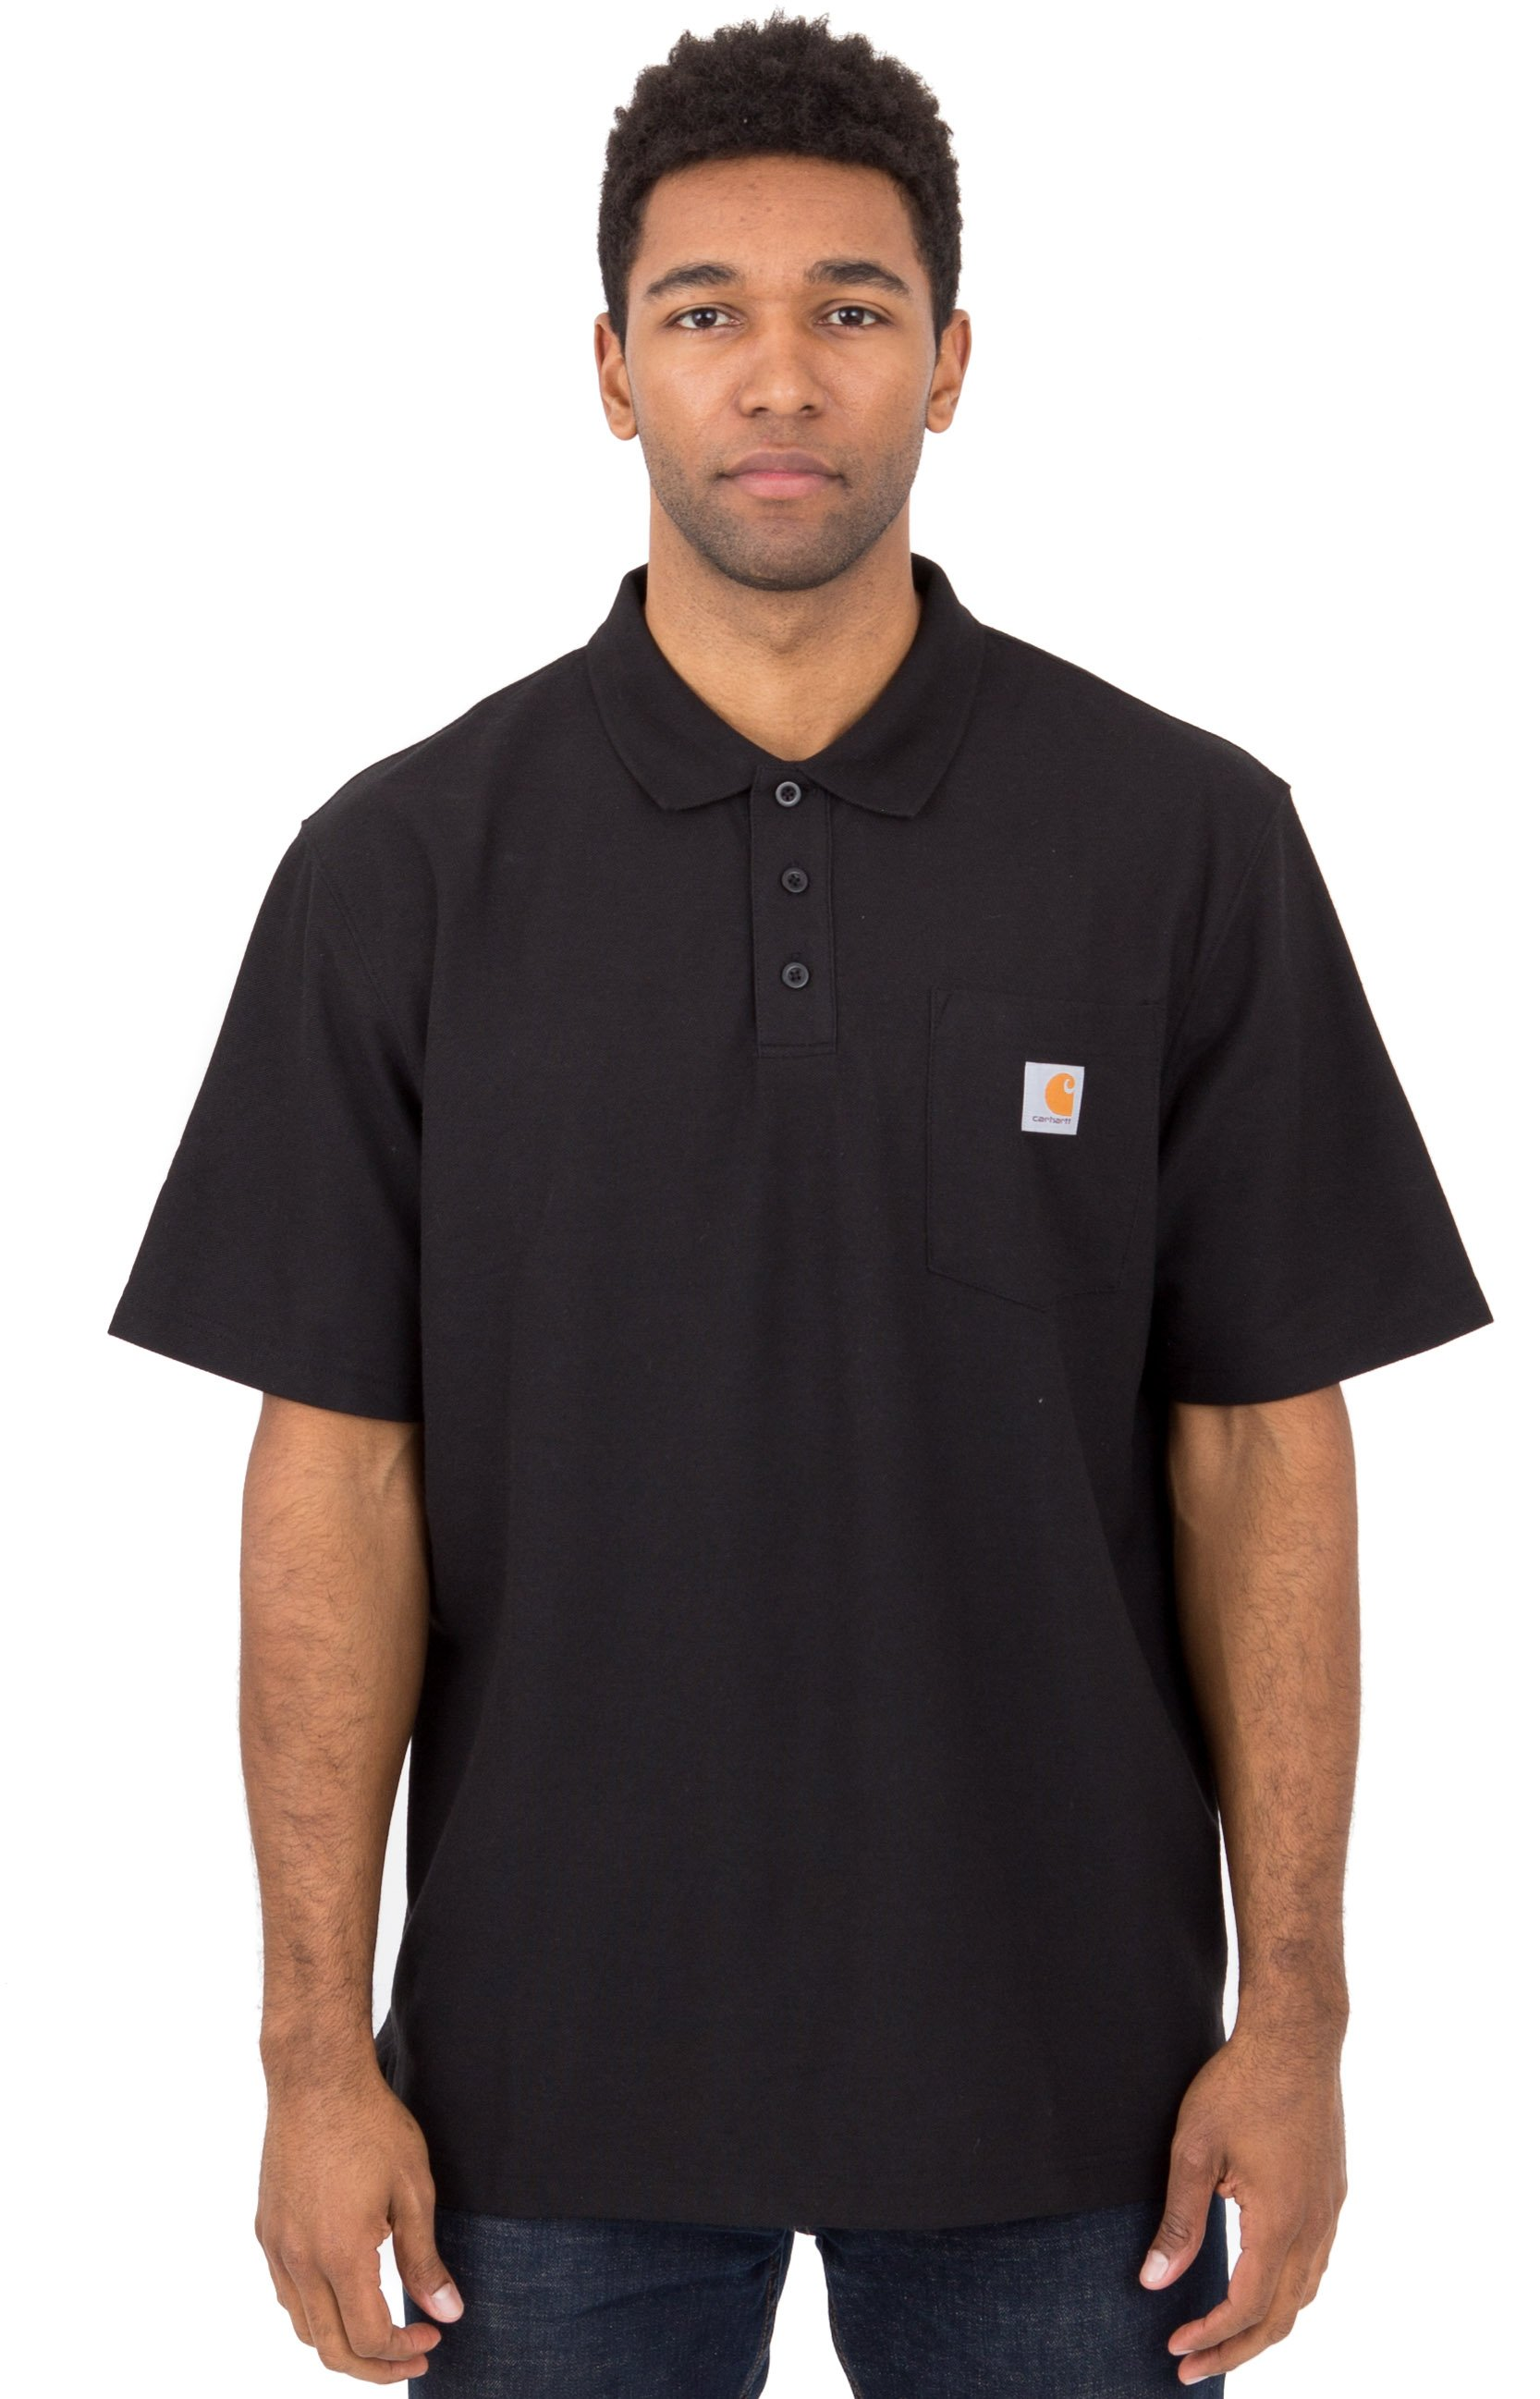 (K570) Contractor's Work Pocket Polo - Black